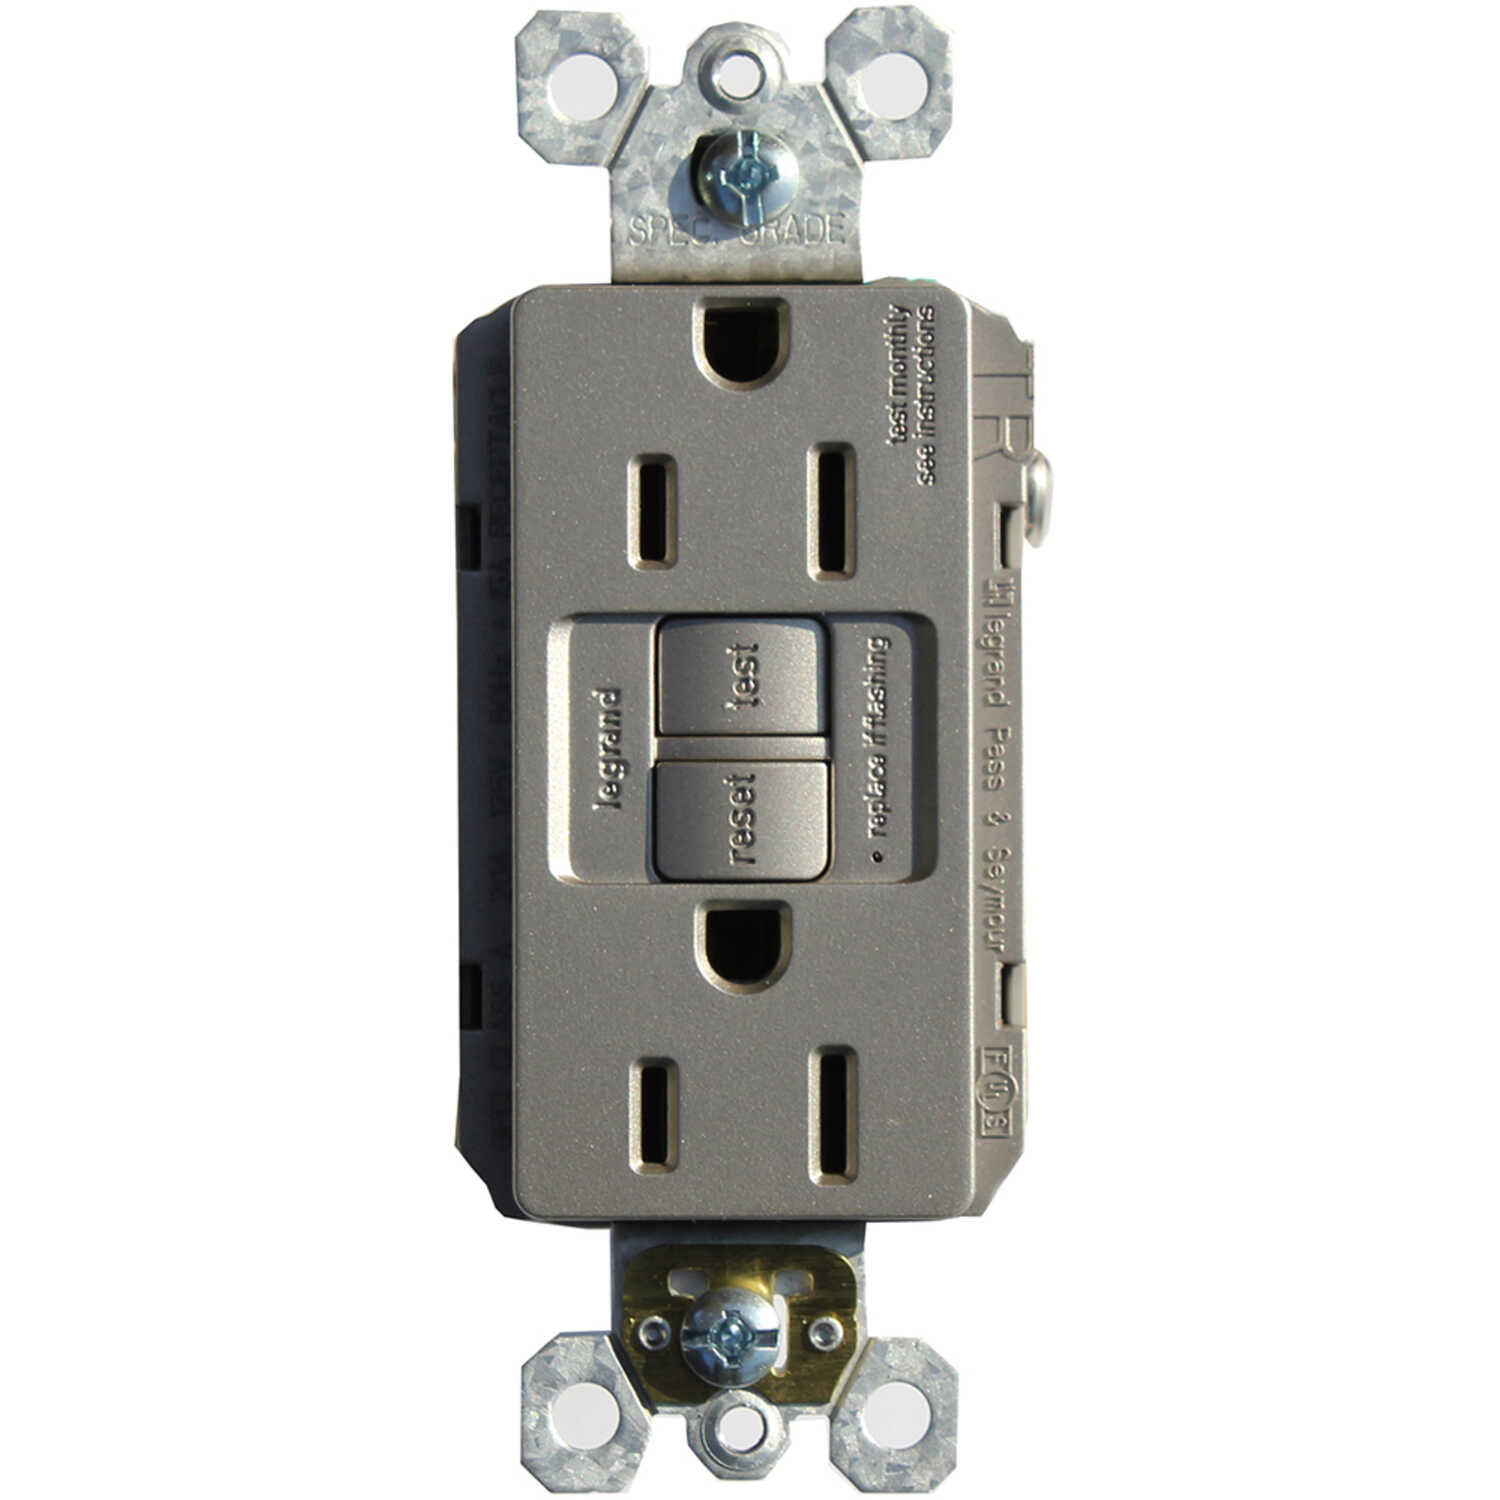 Pass and Seymour  15 amps 125 volts Nickel  GFCI Receptacle  5-15R  1